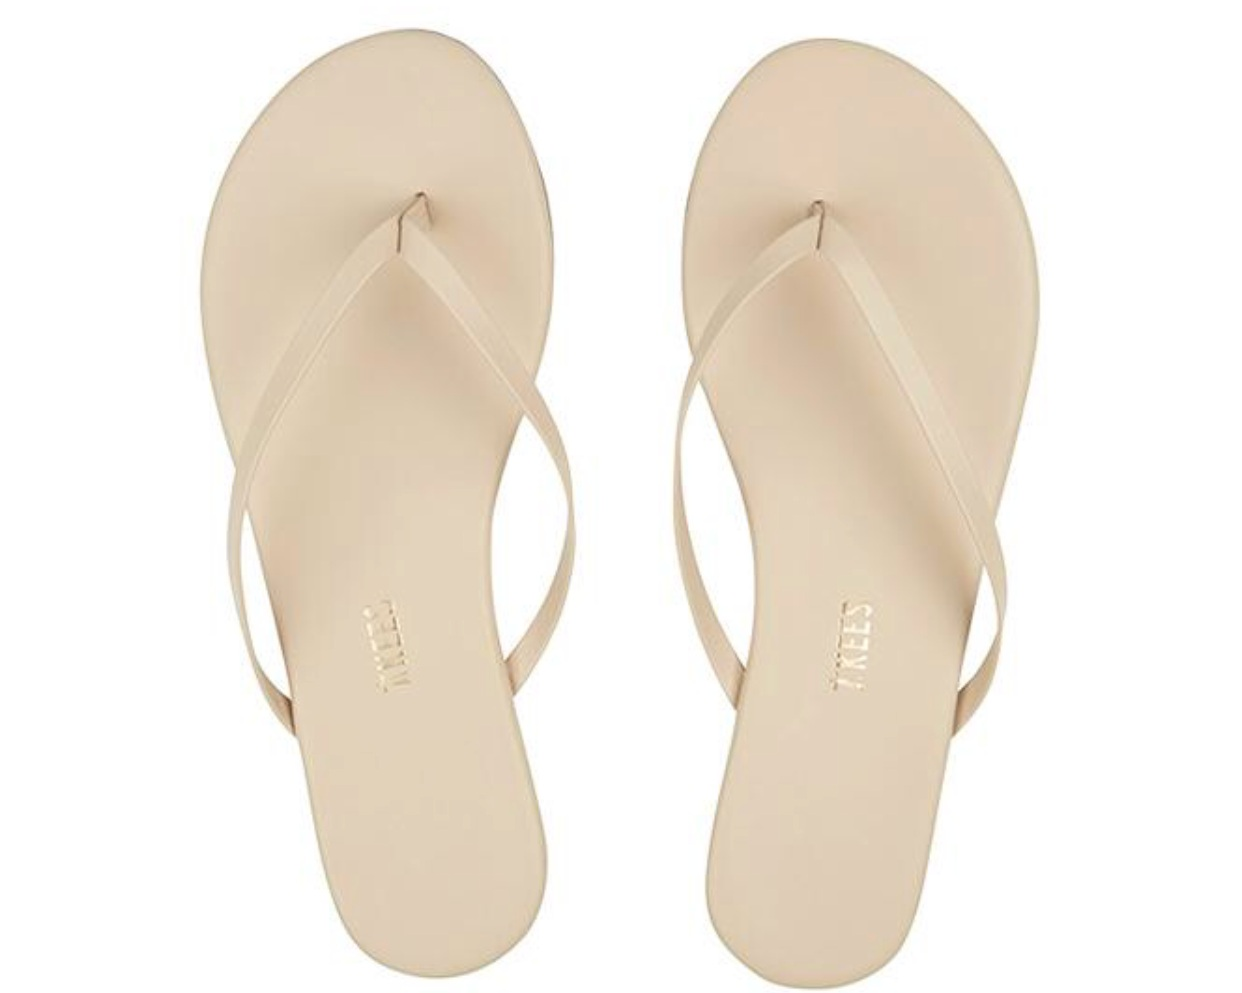 - OKKKK! My new favorite flip flops. They come in any nude shade you can imagine and are so so comfy.Find them here.